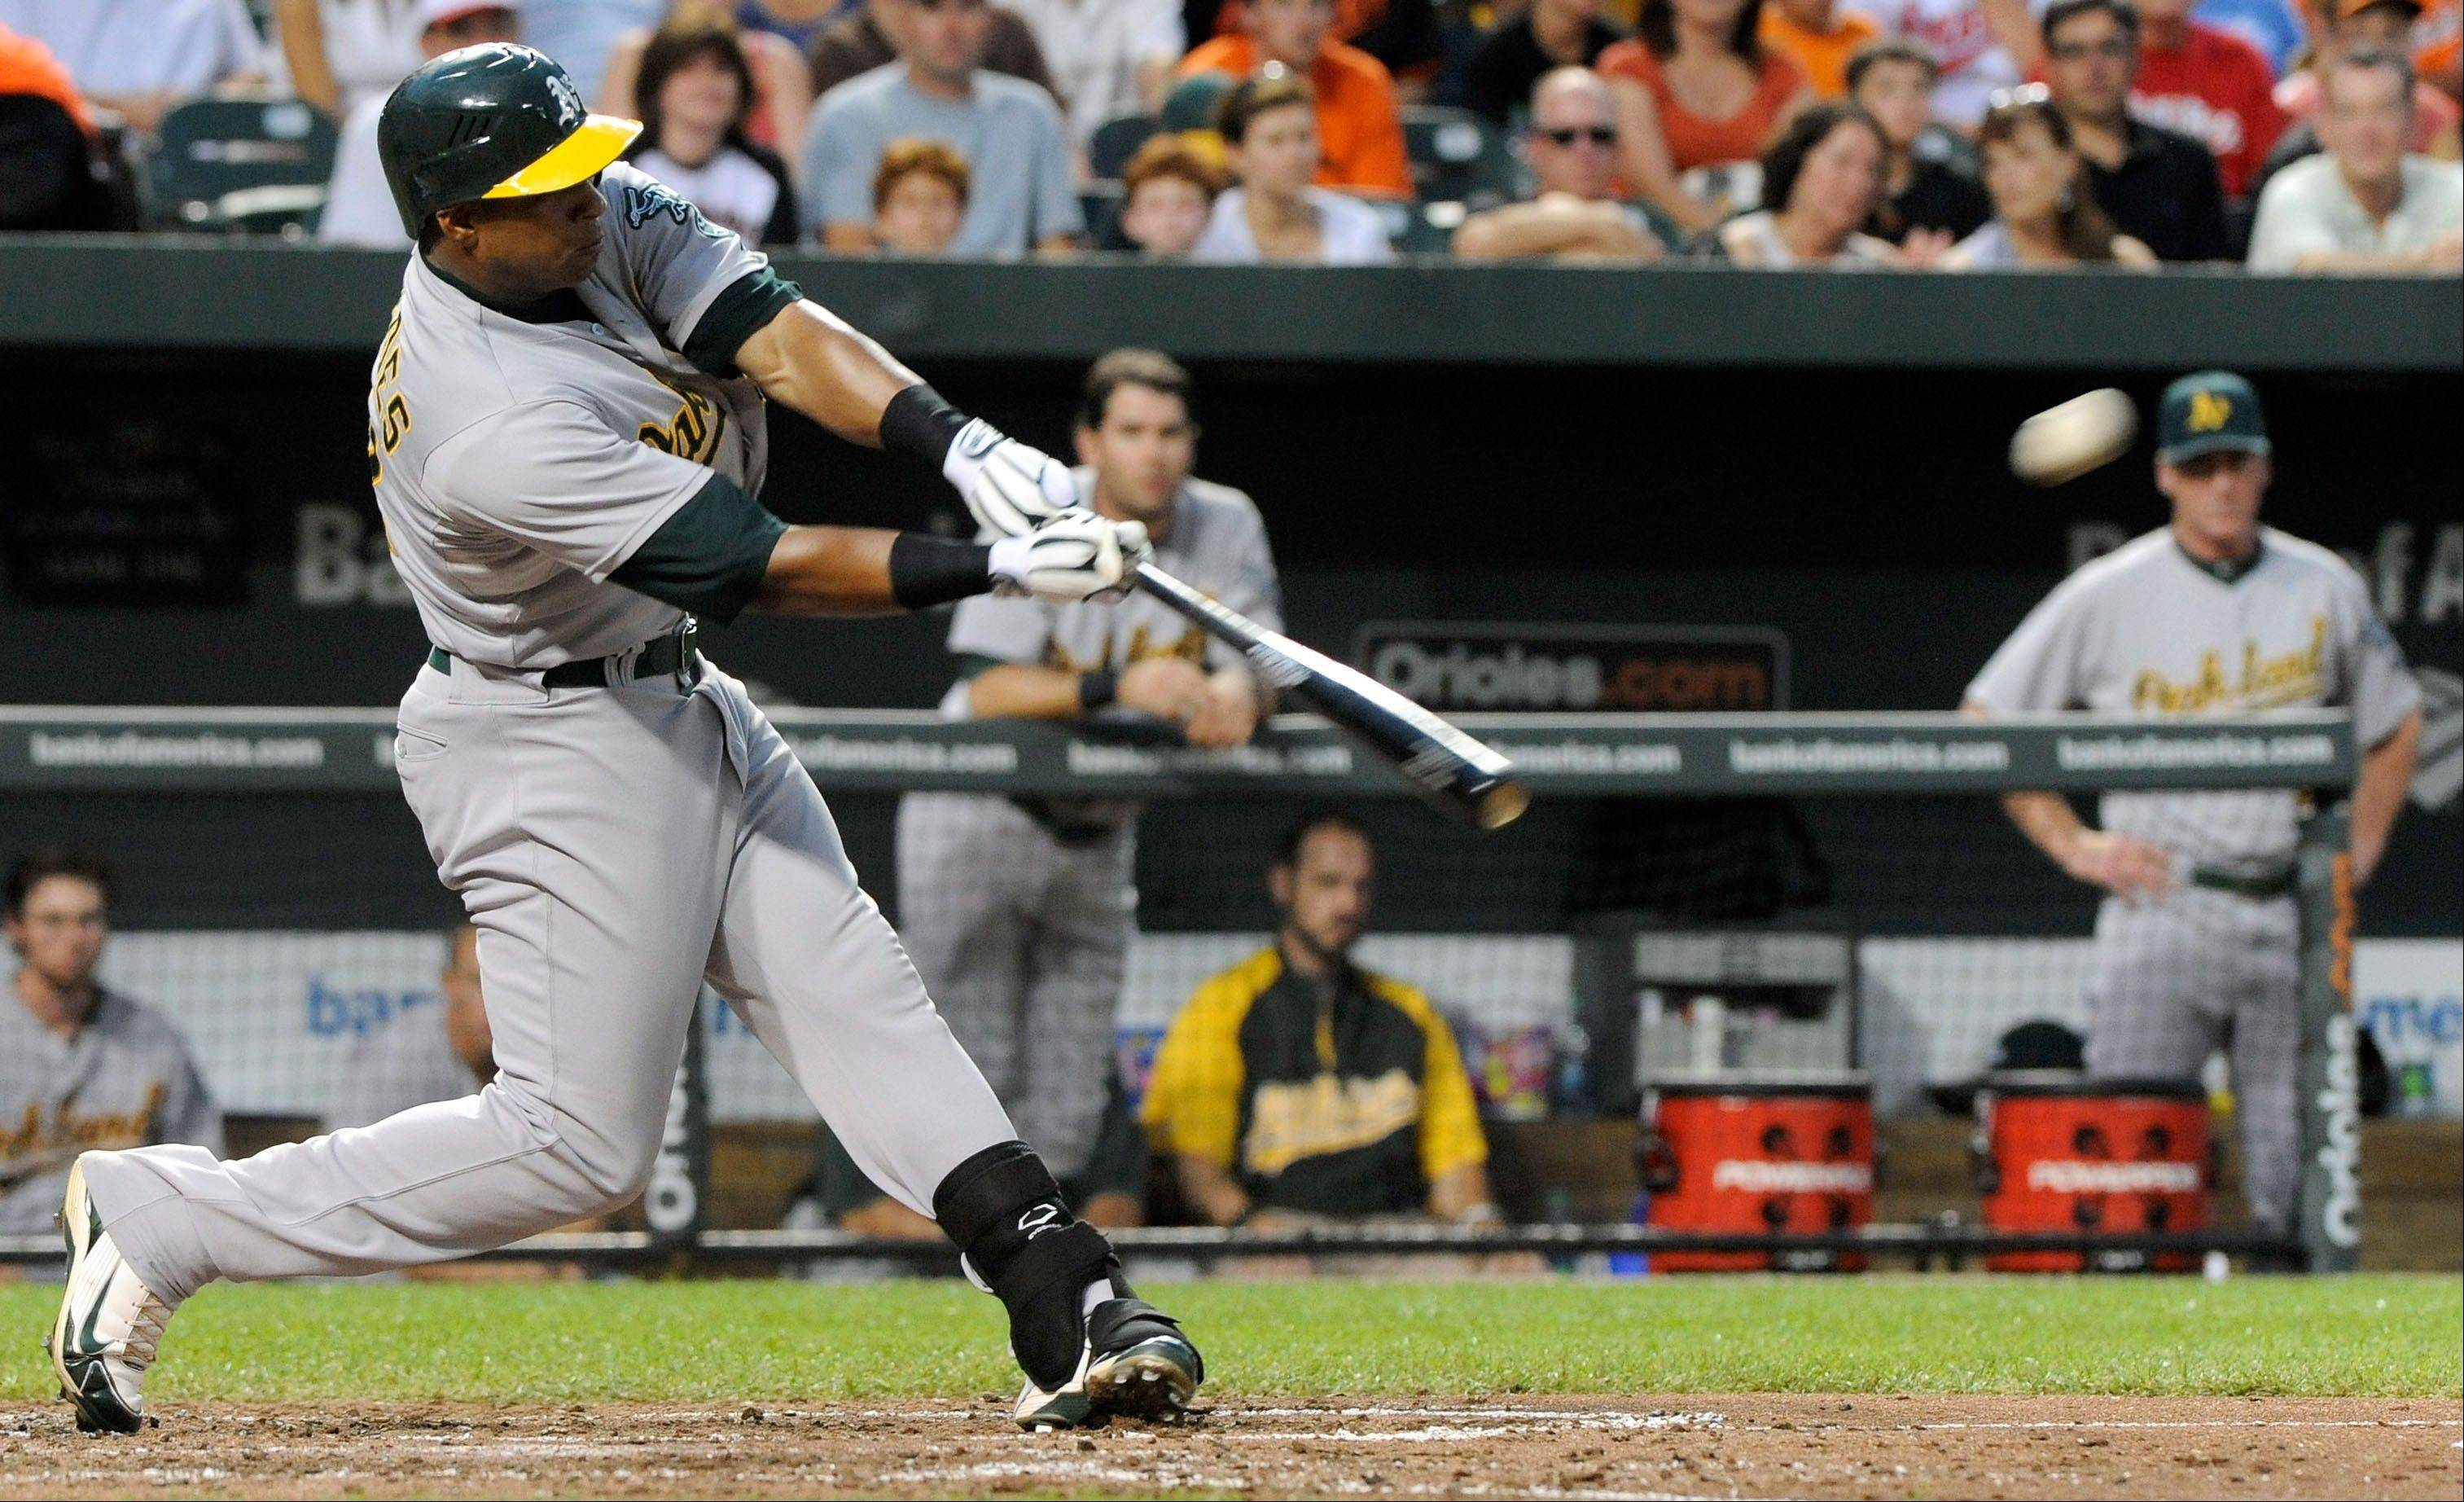 Oakland's Yoenis Cespedes hits a two-run home run in the fourth inning Saturday in Baltimore.